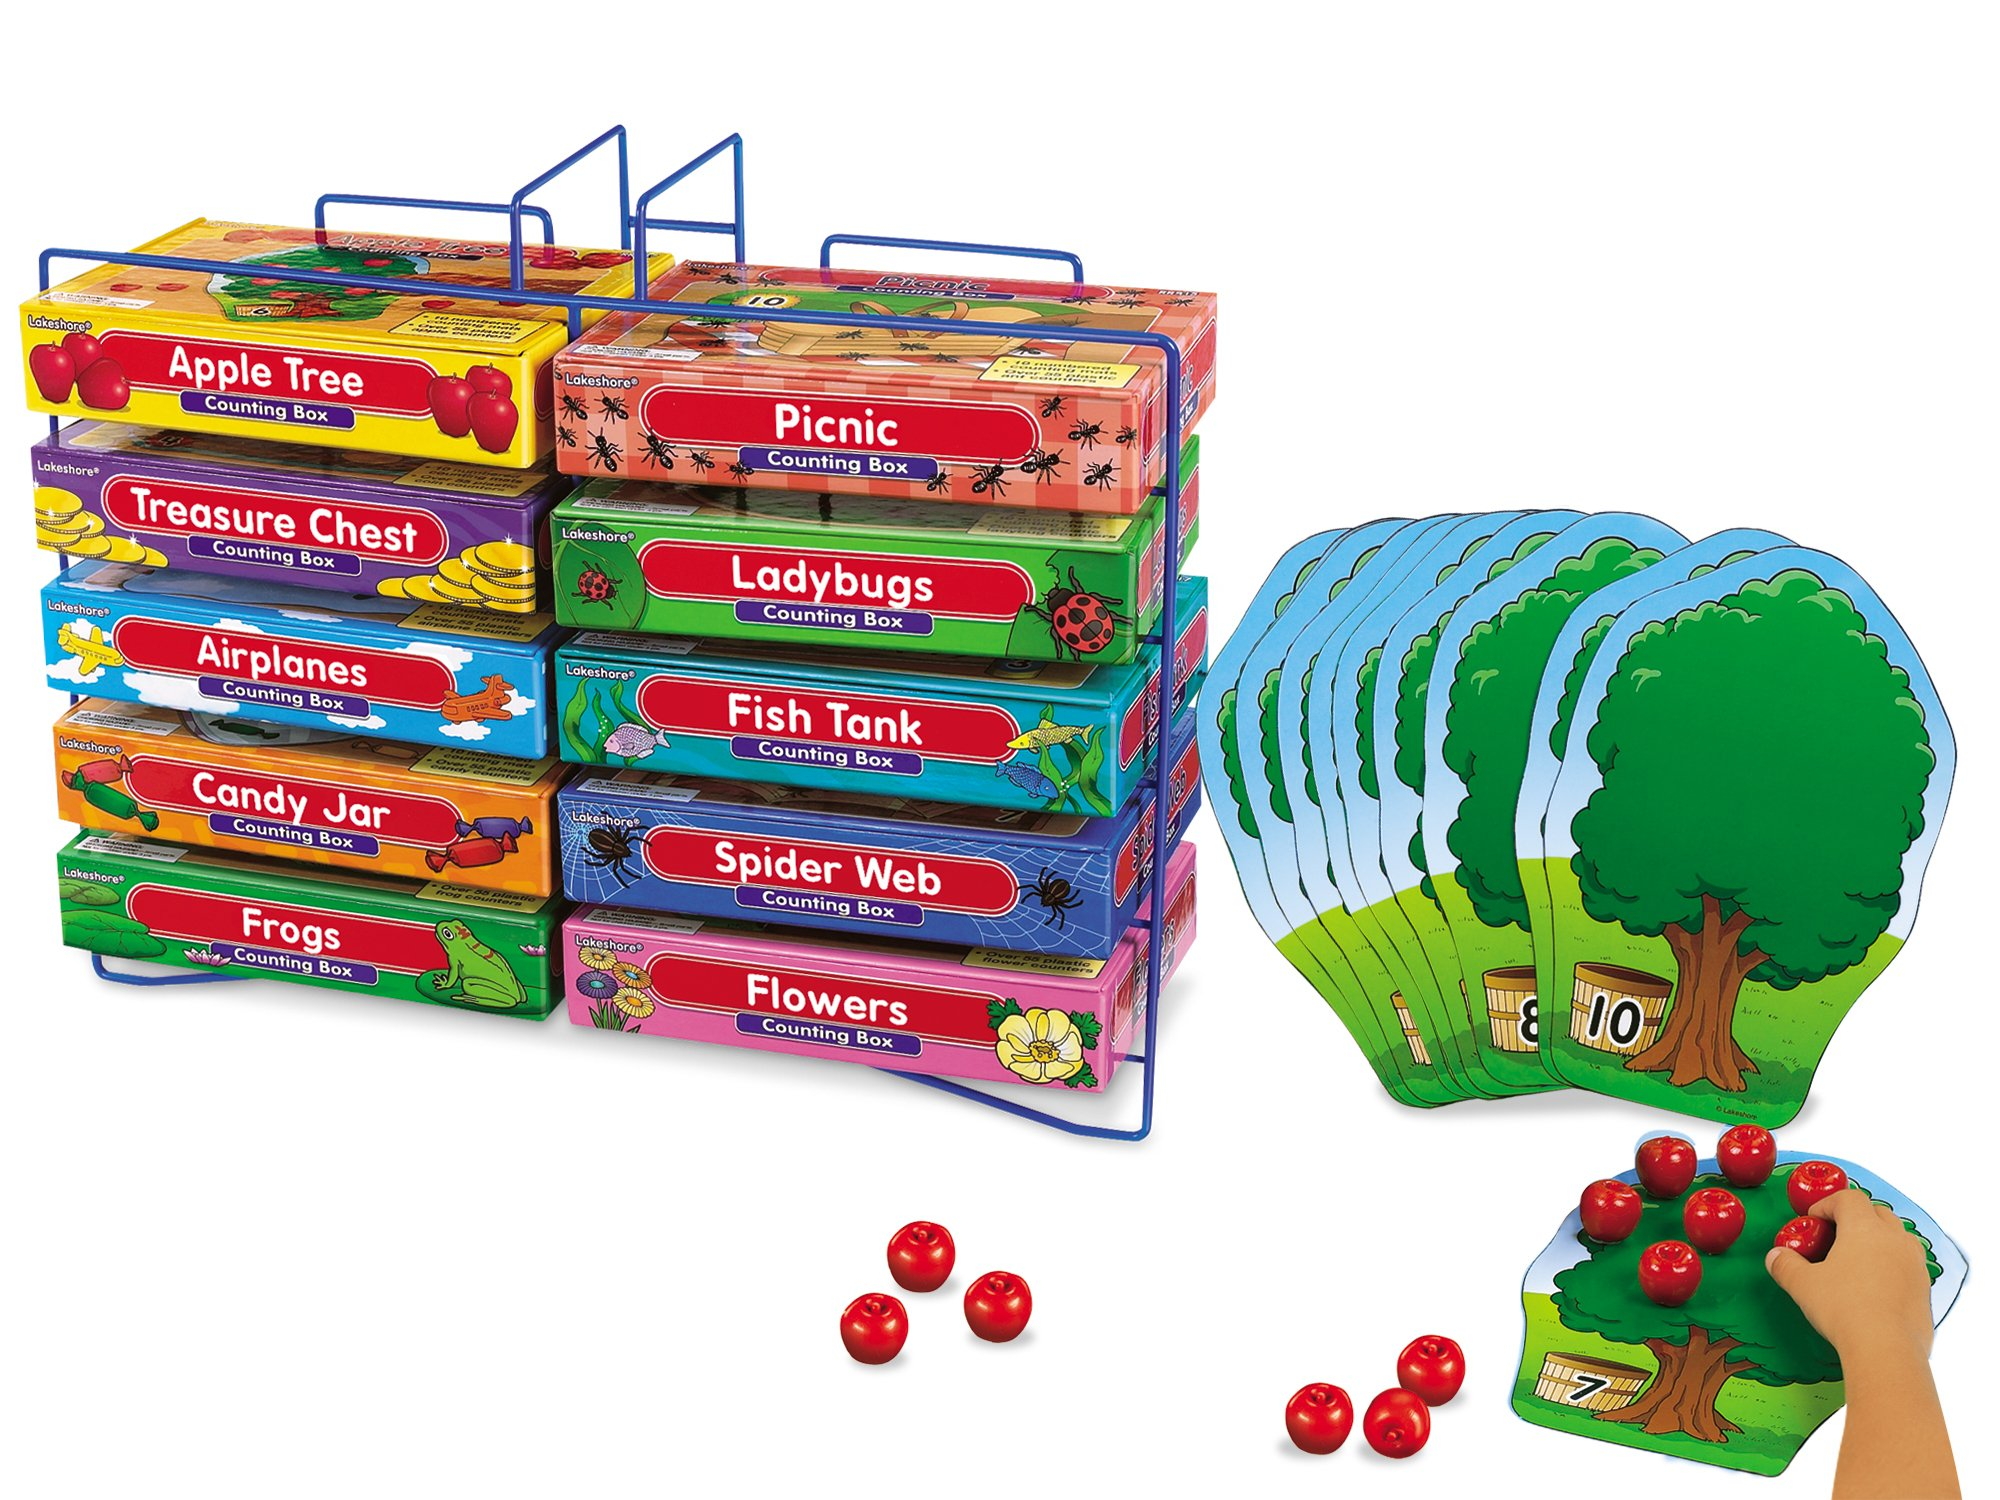 Lakeshore Counting Boxes - Set of 10